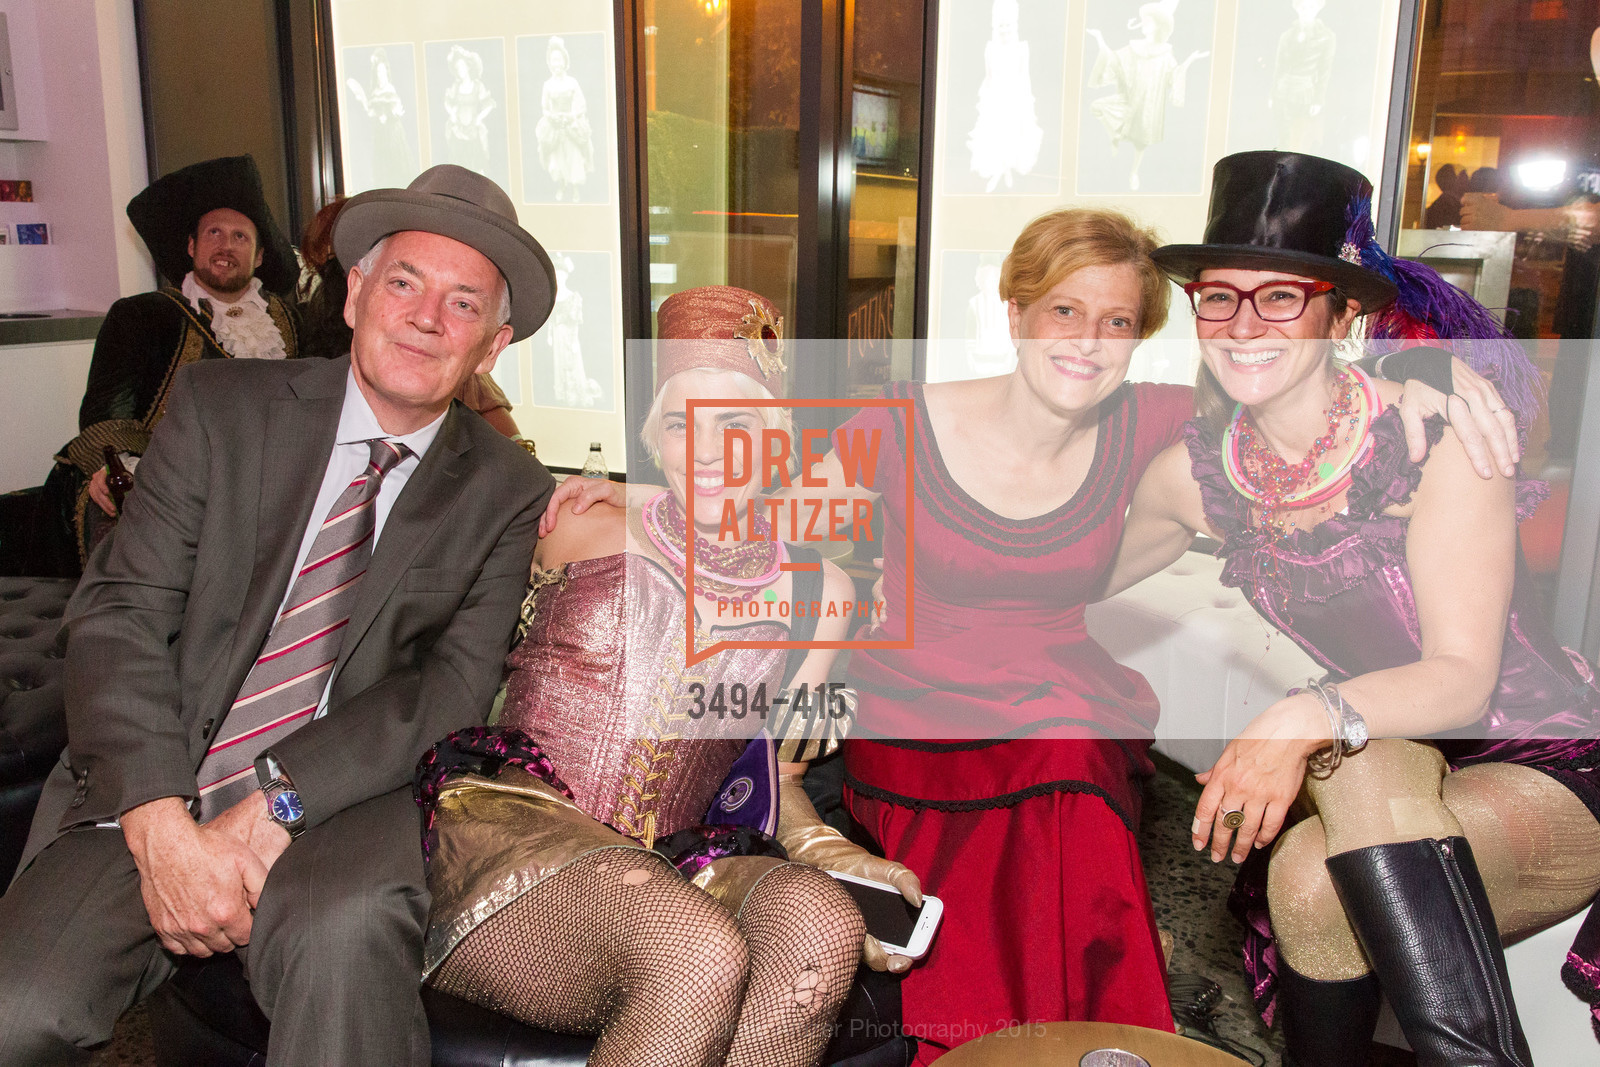 Anthony Giles, Adriana Permut, Carey Perloff, Elise Alexander, SPOOKED AT THE STRAND Presented by the American Conservatory Theater, The Strand Theater. 1127 Market Street, October 26th, 2015,Drew Altizer, Drew Altizer Photography, full-service agency, private events, San Francisco photographer, photographer california